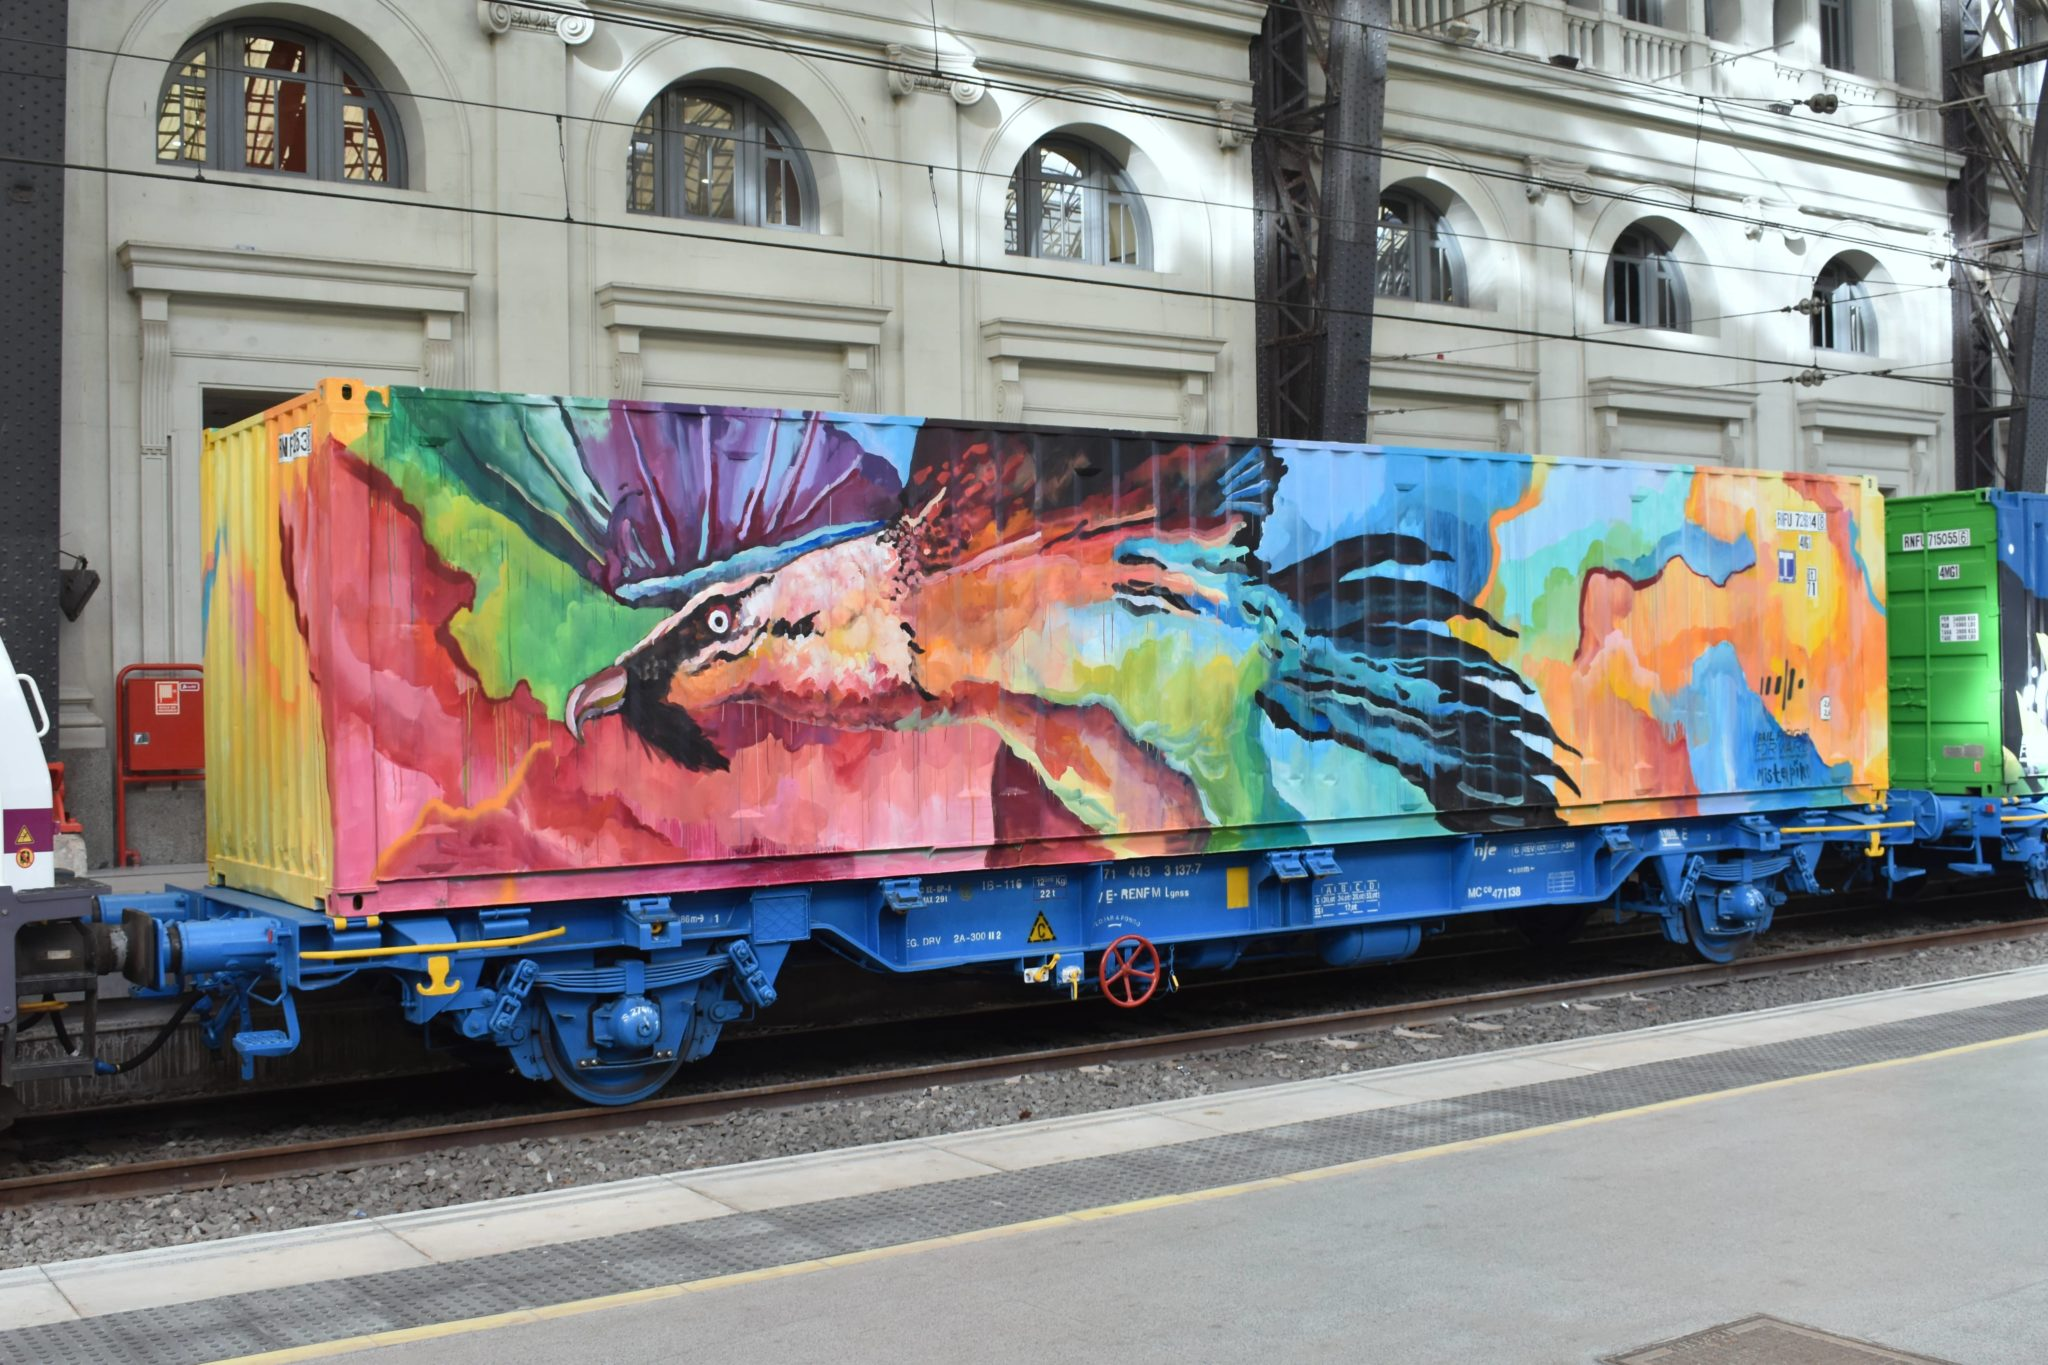 Misterpiro Noah's Train Street art